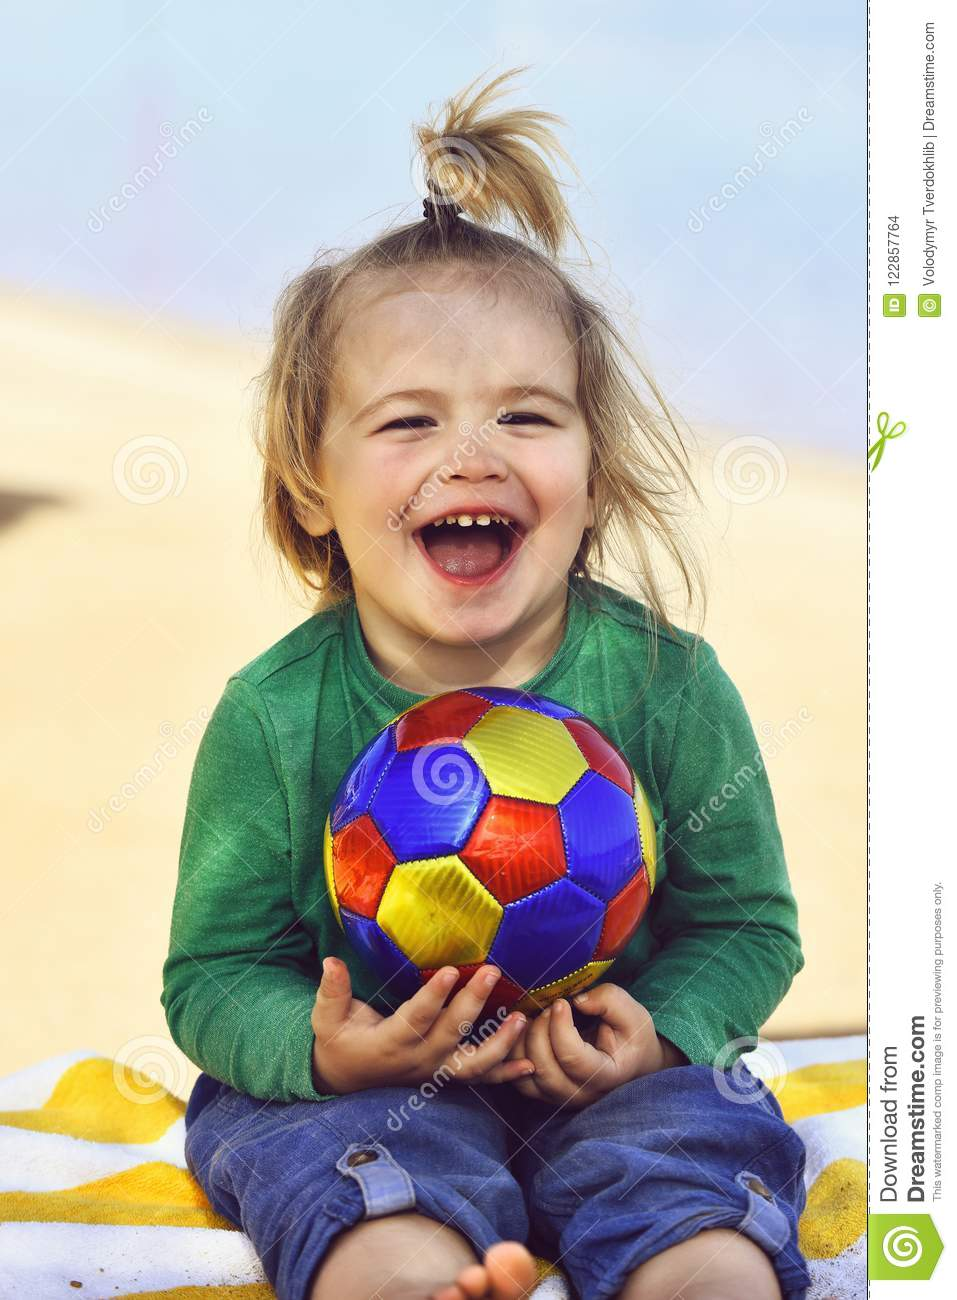 Adorable boy small child with happy smiling face holding ball